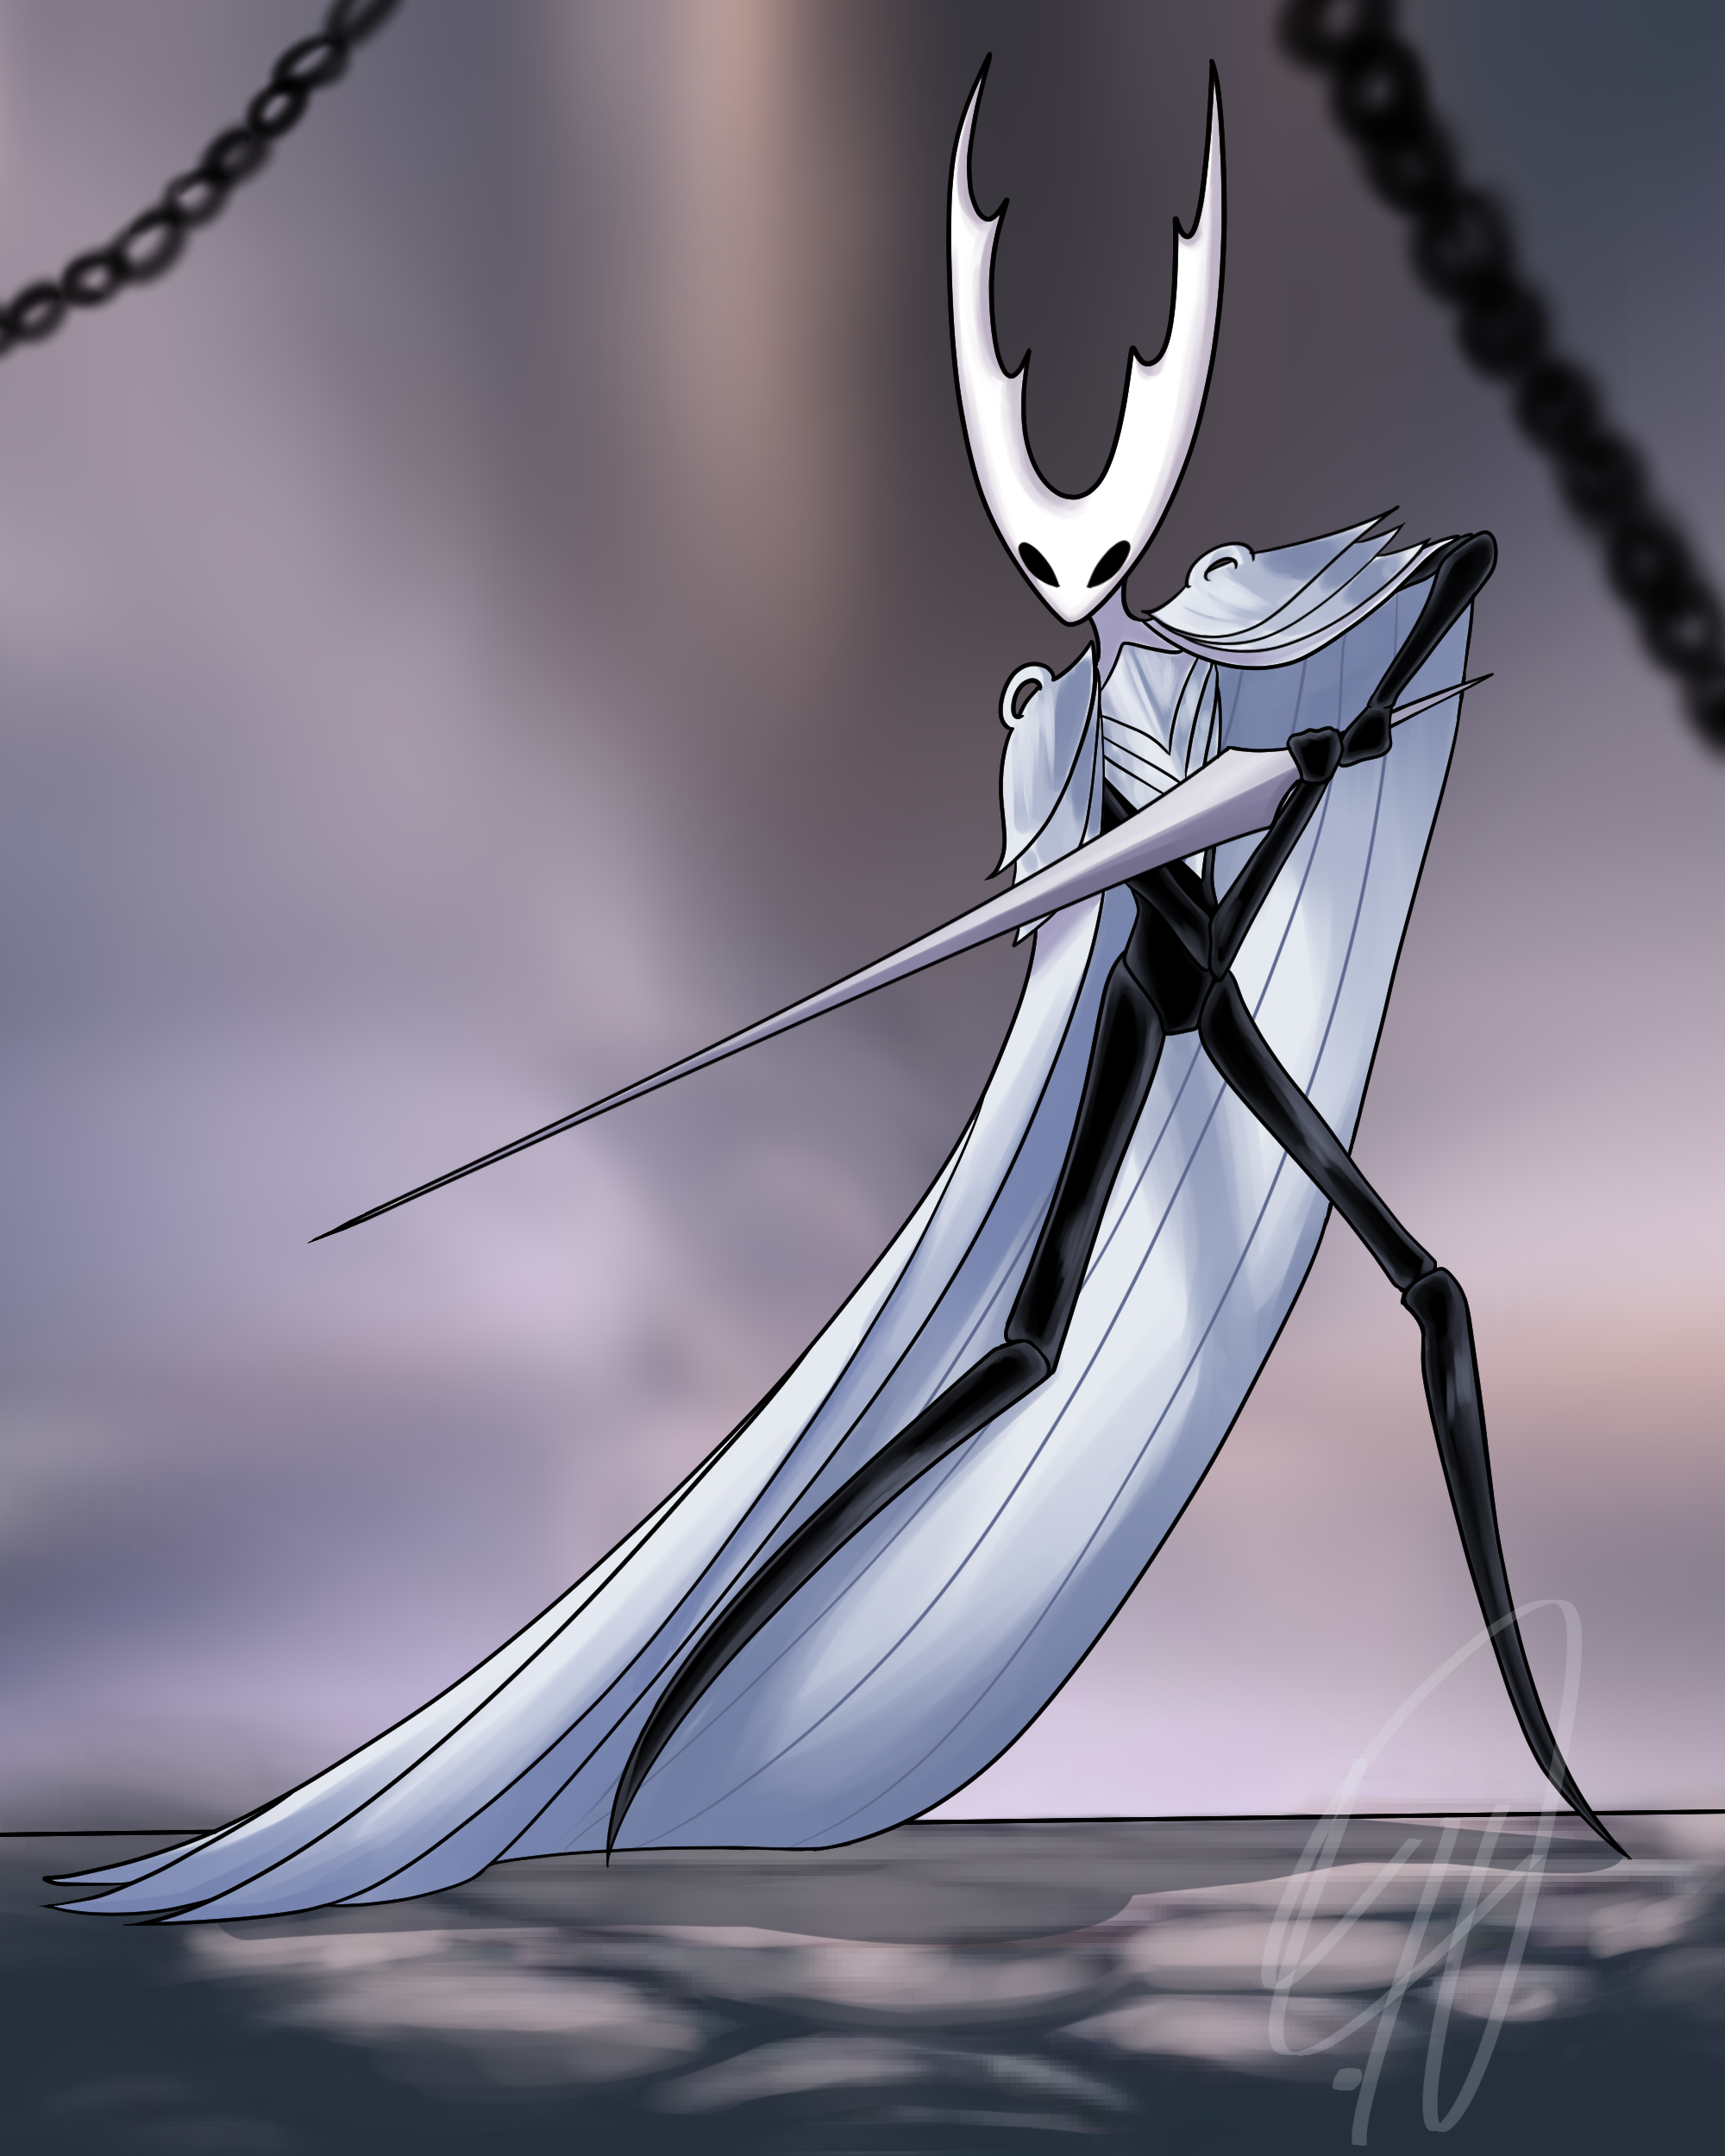 The Hollow Knight Pure Vessel by TatsuoDraws on Newgrounds